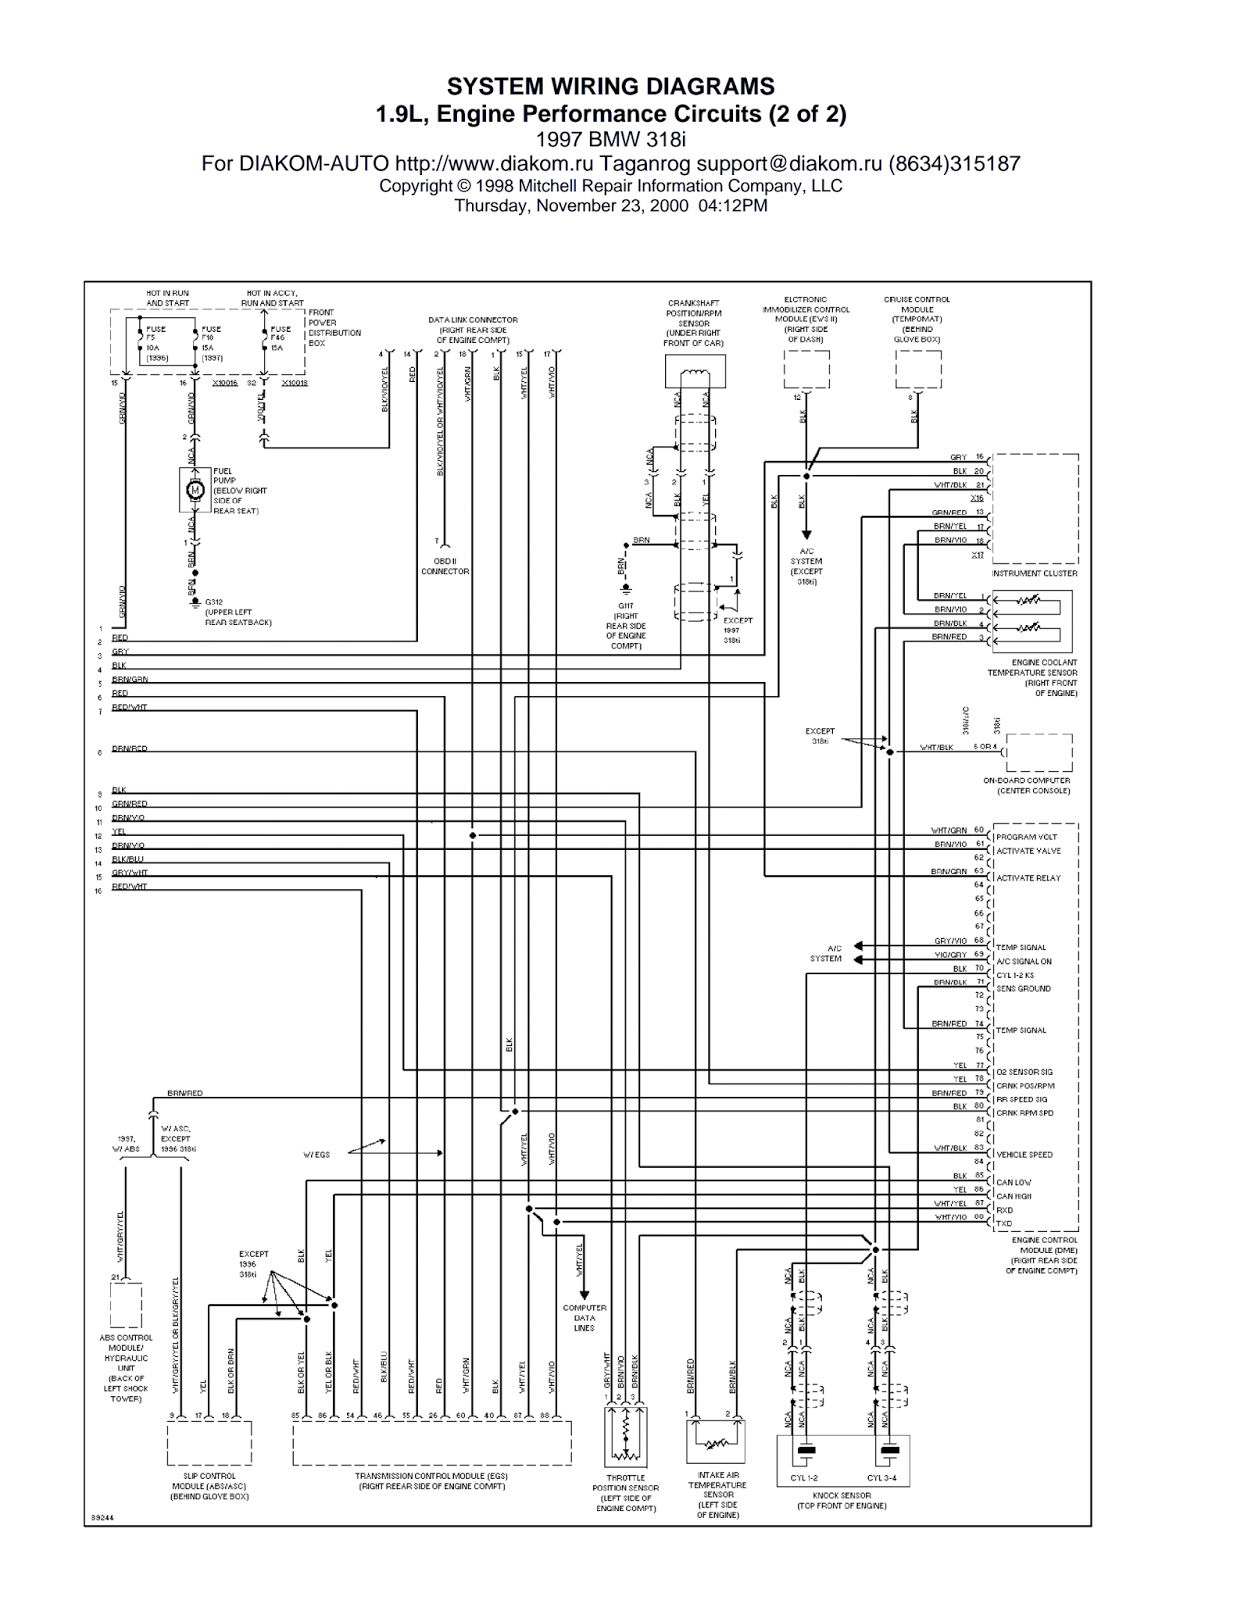 Wiring Diagrams And Free Manual Ebooks Bmw 318i 1 9l